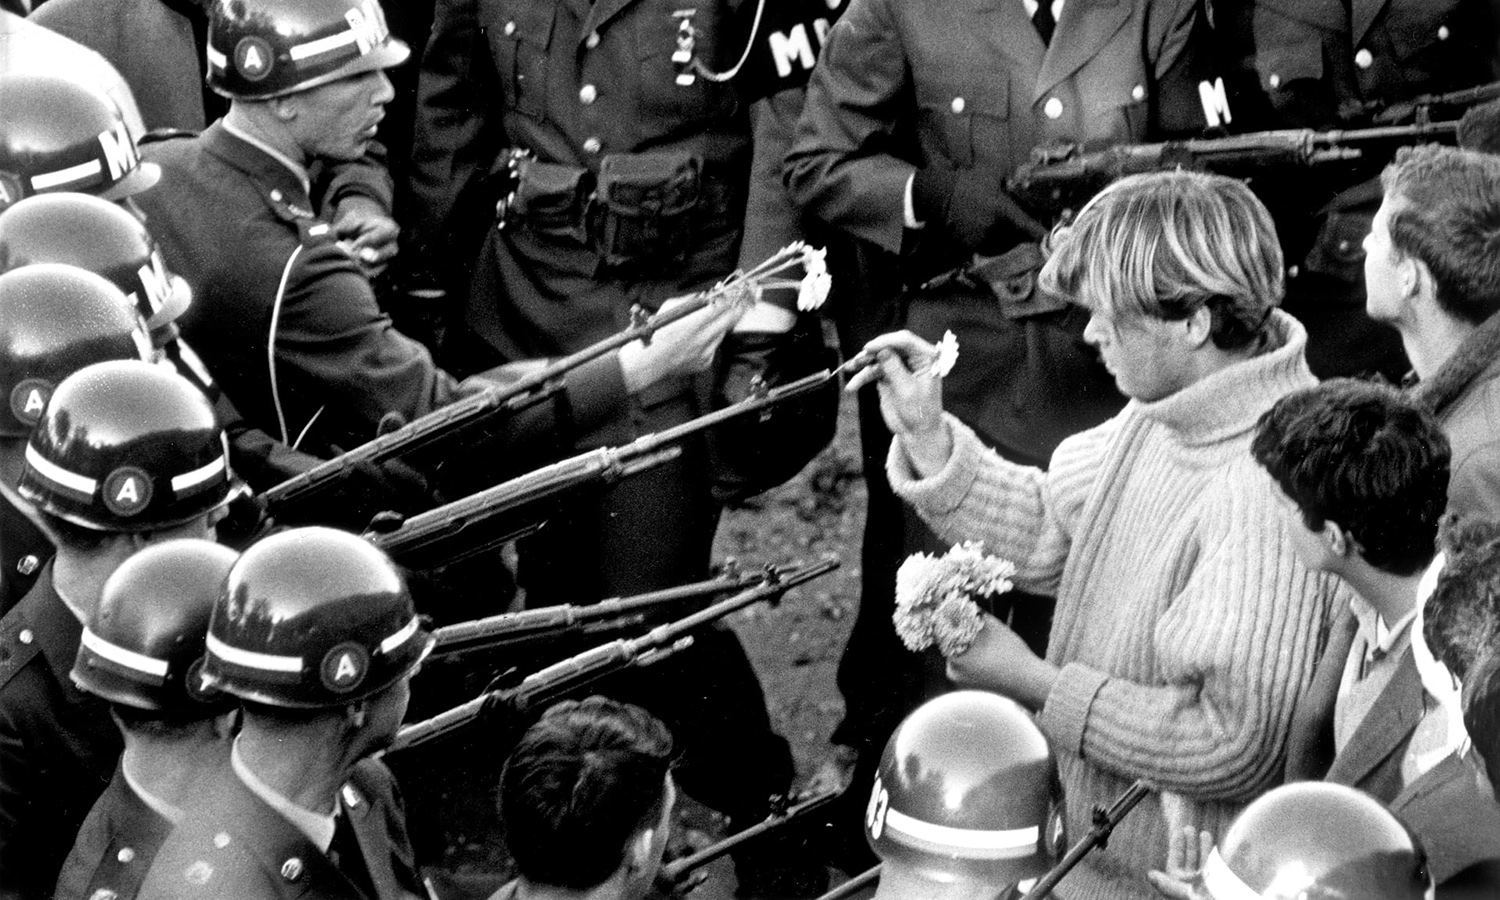 19671021_protest_at_pentagon.jpg